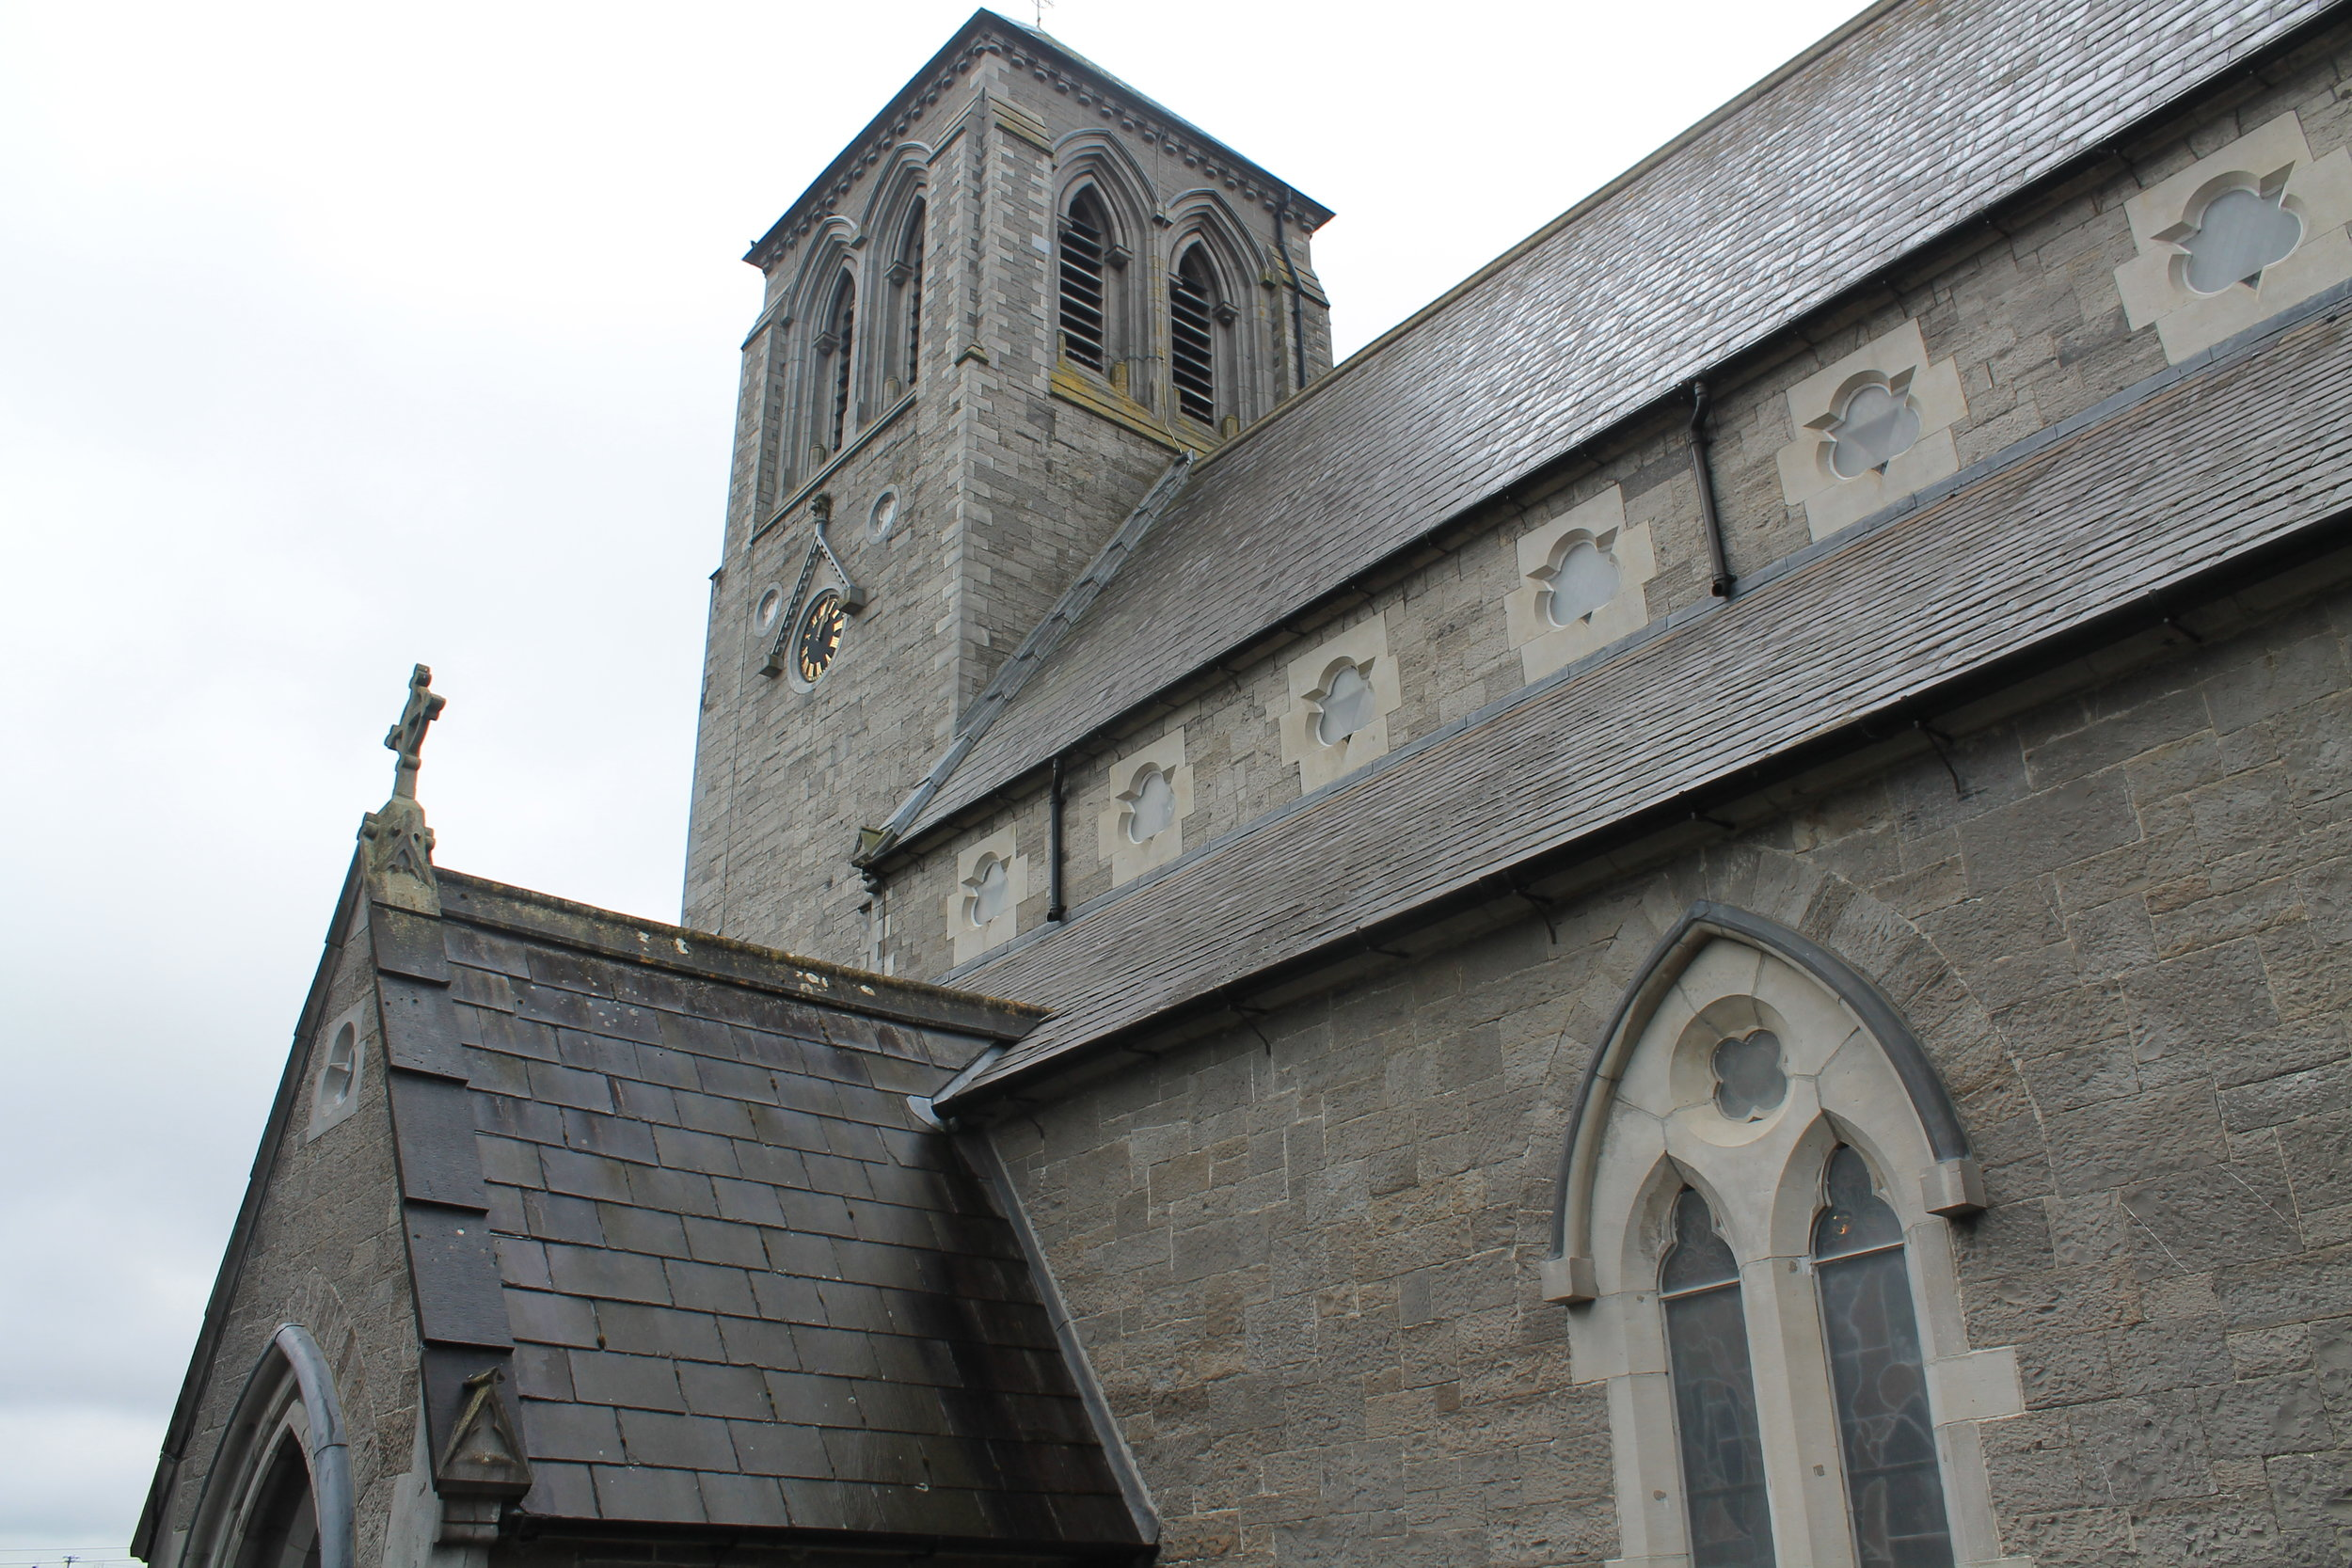 Church roof inspections ensure repairs are addressed early and remain minor